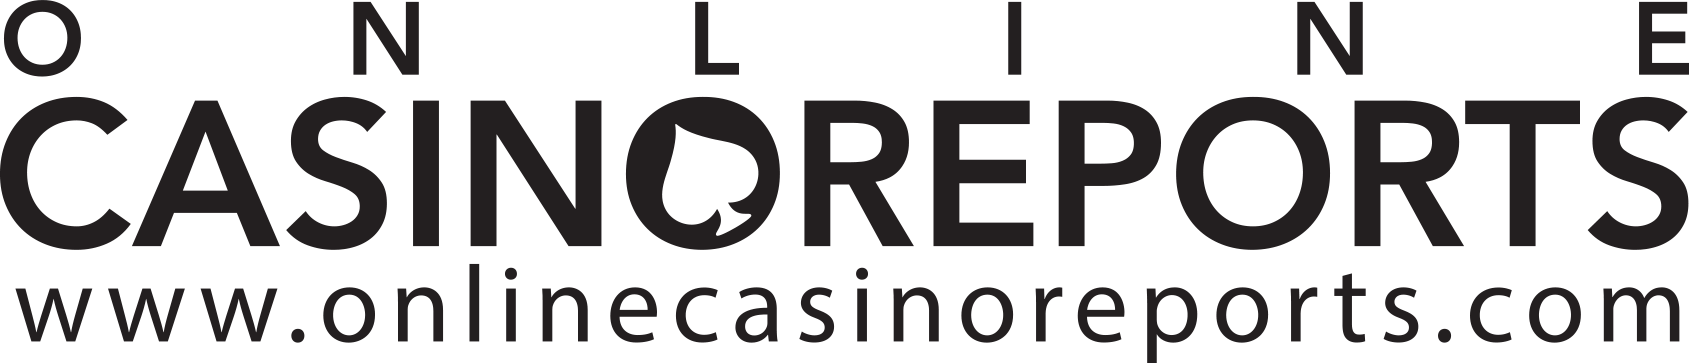 - Online Casino Reports is one of the largest online gambling directories, with over 77 international sites in 35+ languages. OCR provides a comprehensive listing of casino and product reviews, industry news, informative guides, exclusive bonuses and more for players around the world.